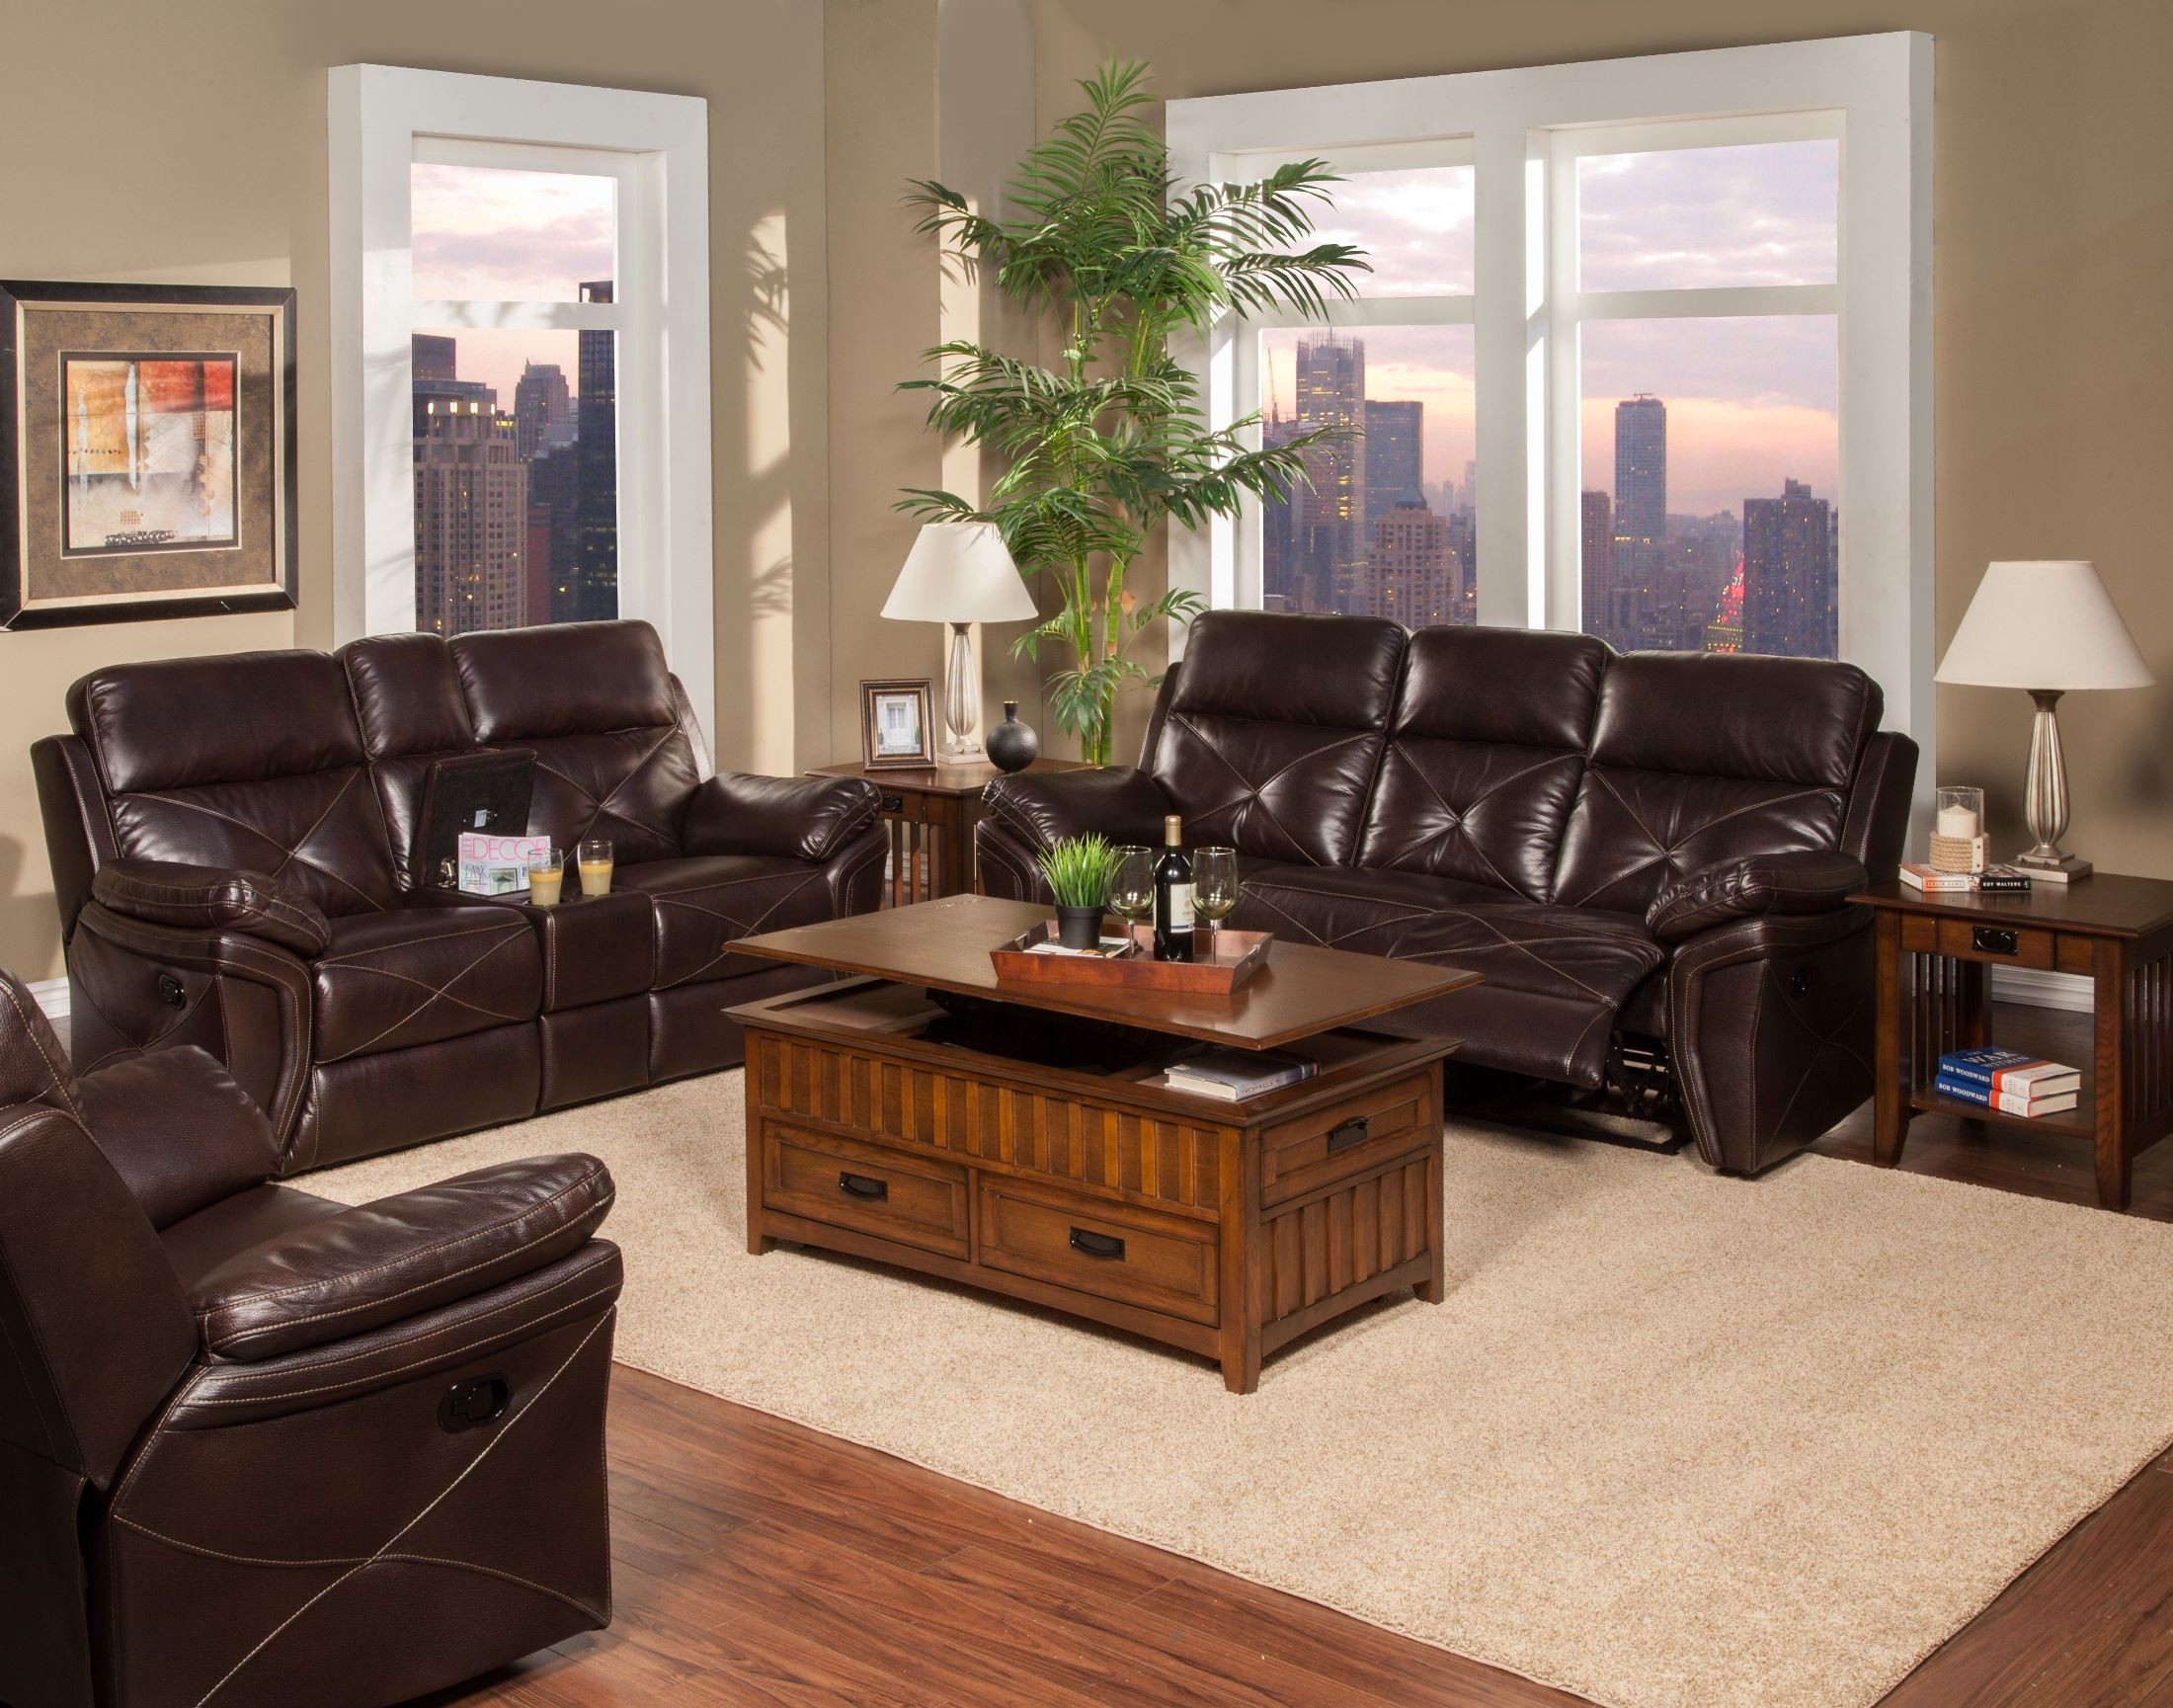 Galaxy Snake Chocolate Dual Reclining Living Room Set From New Classics 20 326 30 Sch